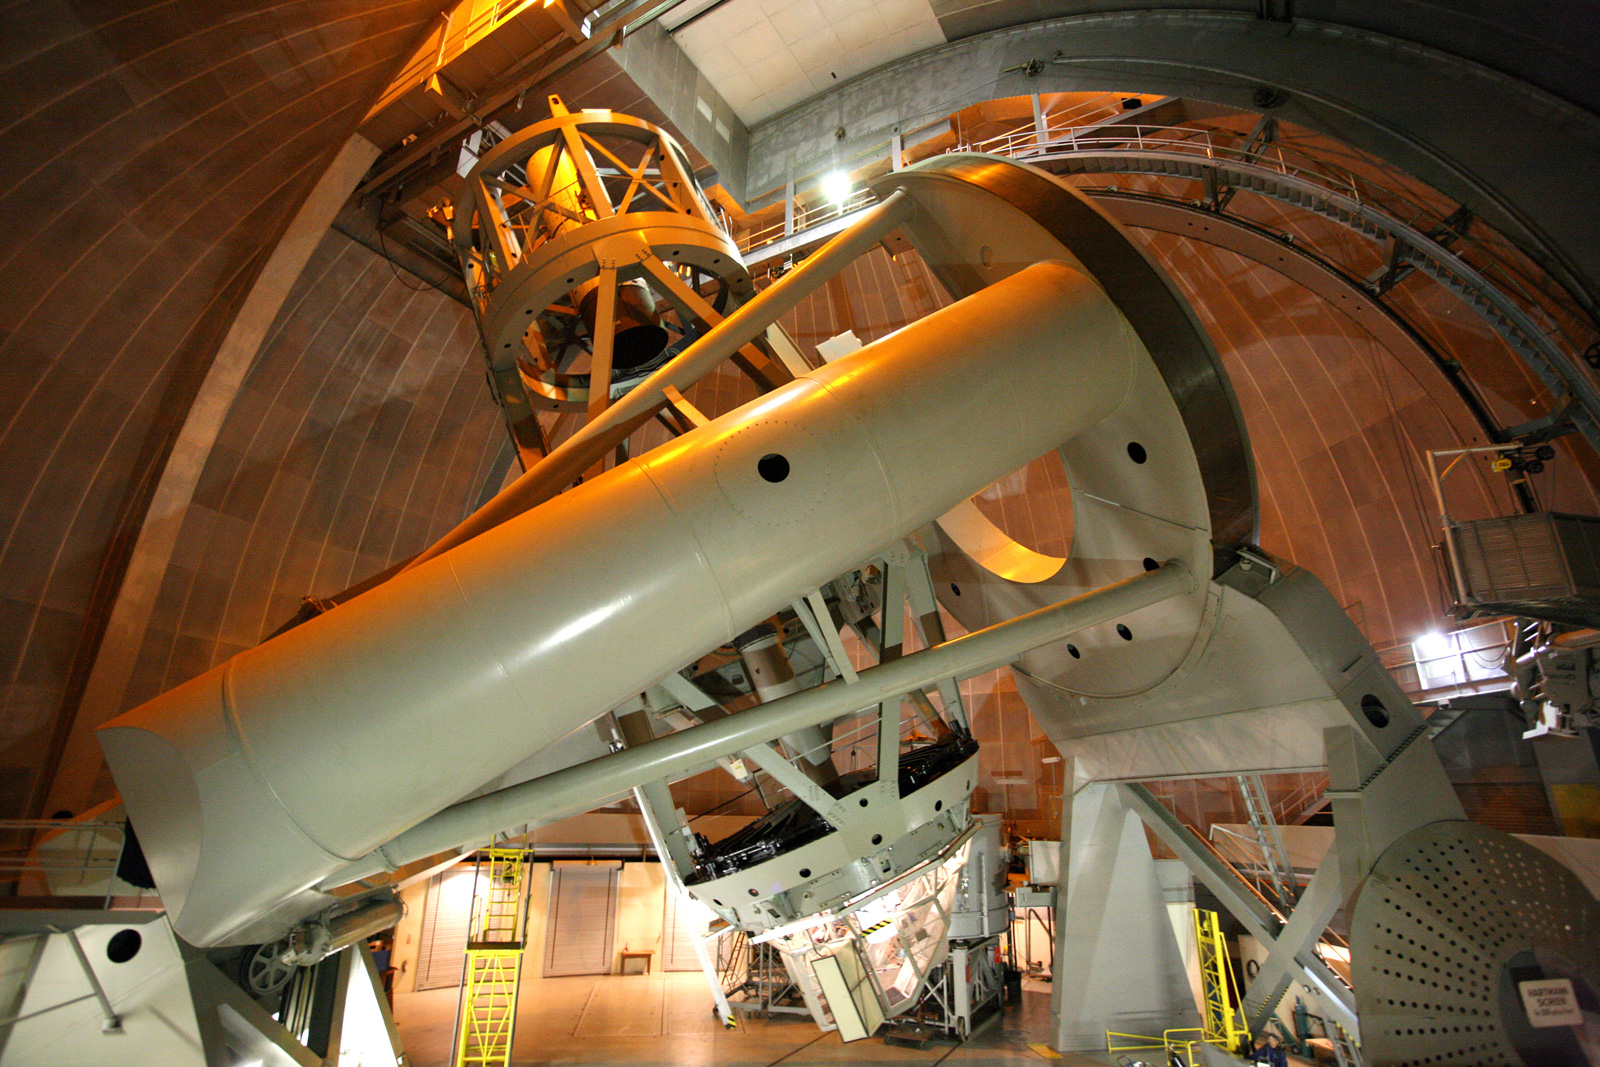 The 200-inch Hale telescope at Palomar Observatory, USA  (credit: Palomar Observatory/California Institute of Technology)